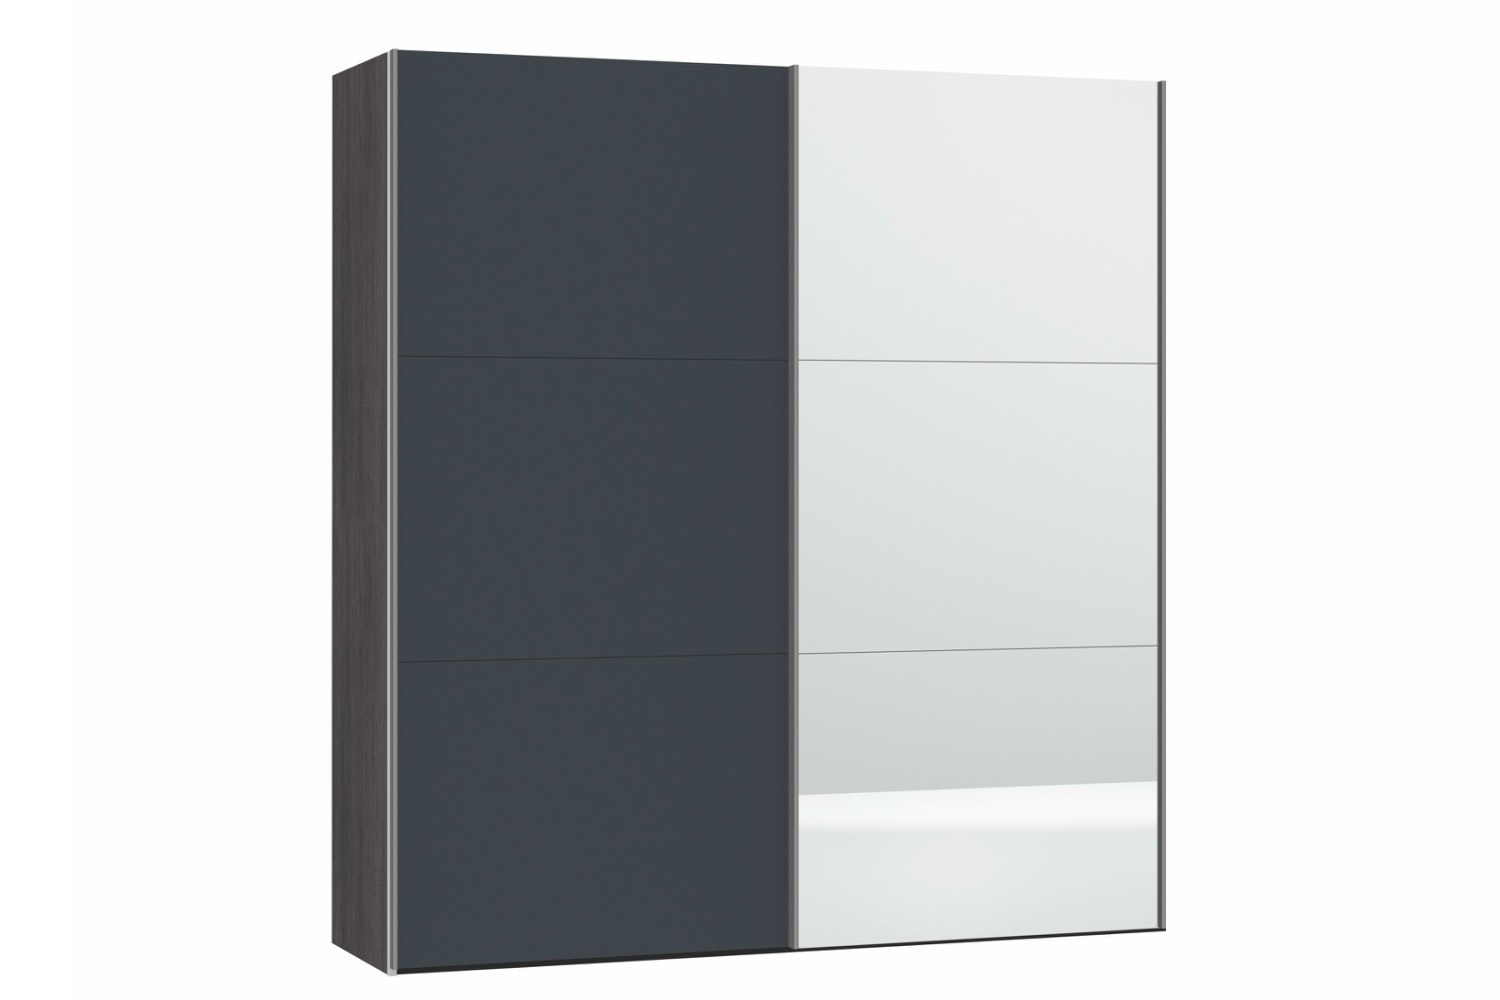 Zermatt Sliderobe 2M | Grey Matt & Mirror